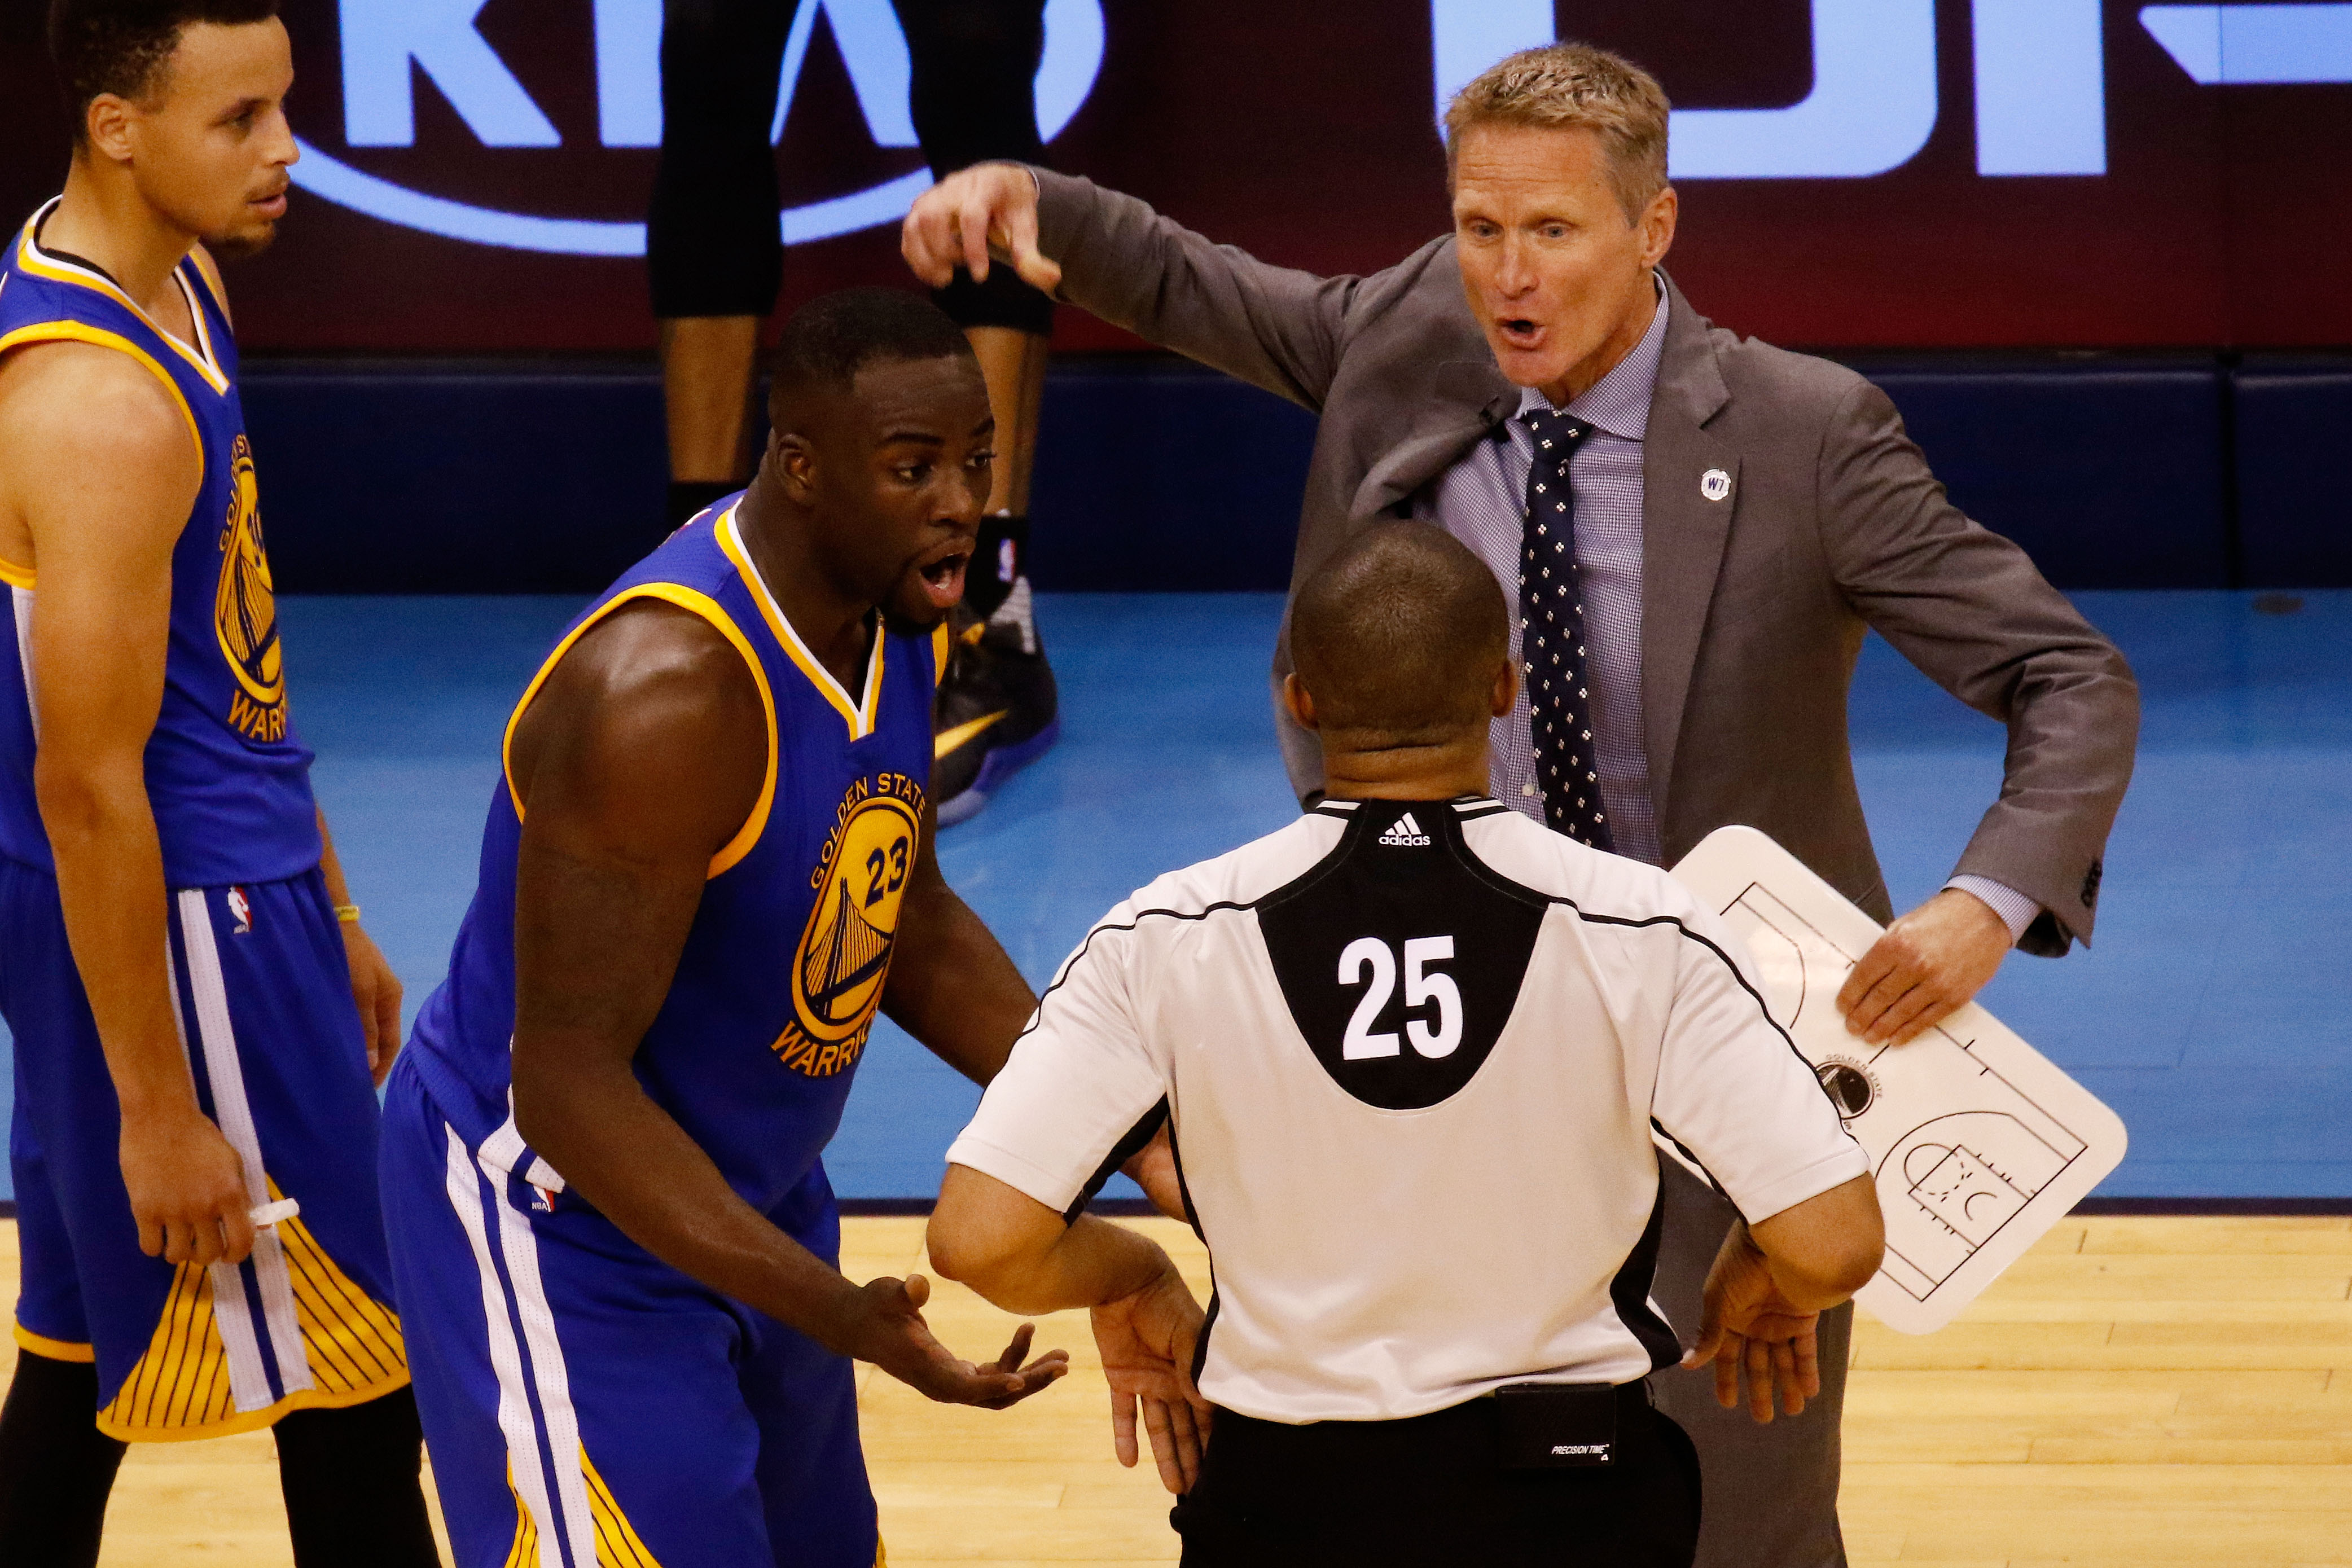 OKLAHOMA CITY, OK - MAY 22:  Head coach Steve Kerr and Draymond Green #23 of the Golden State Warriors argue with referee Tony Brothers #25 in the second quarter against the Oklahoma City Thunder in game three of the Western Conference Finals during the 2